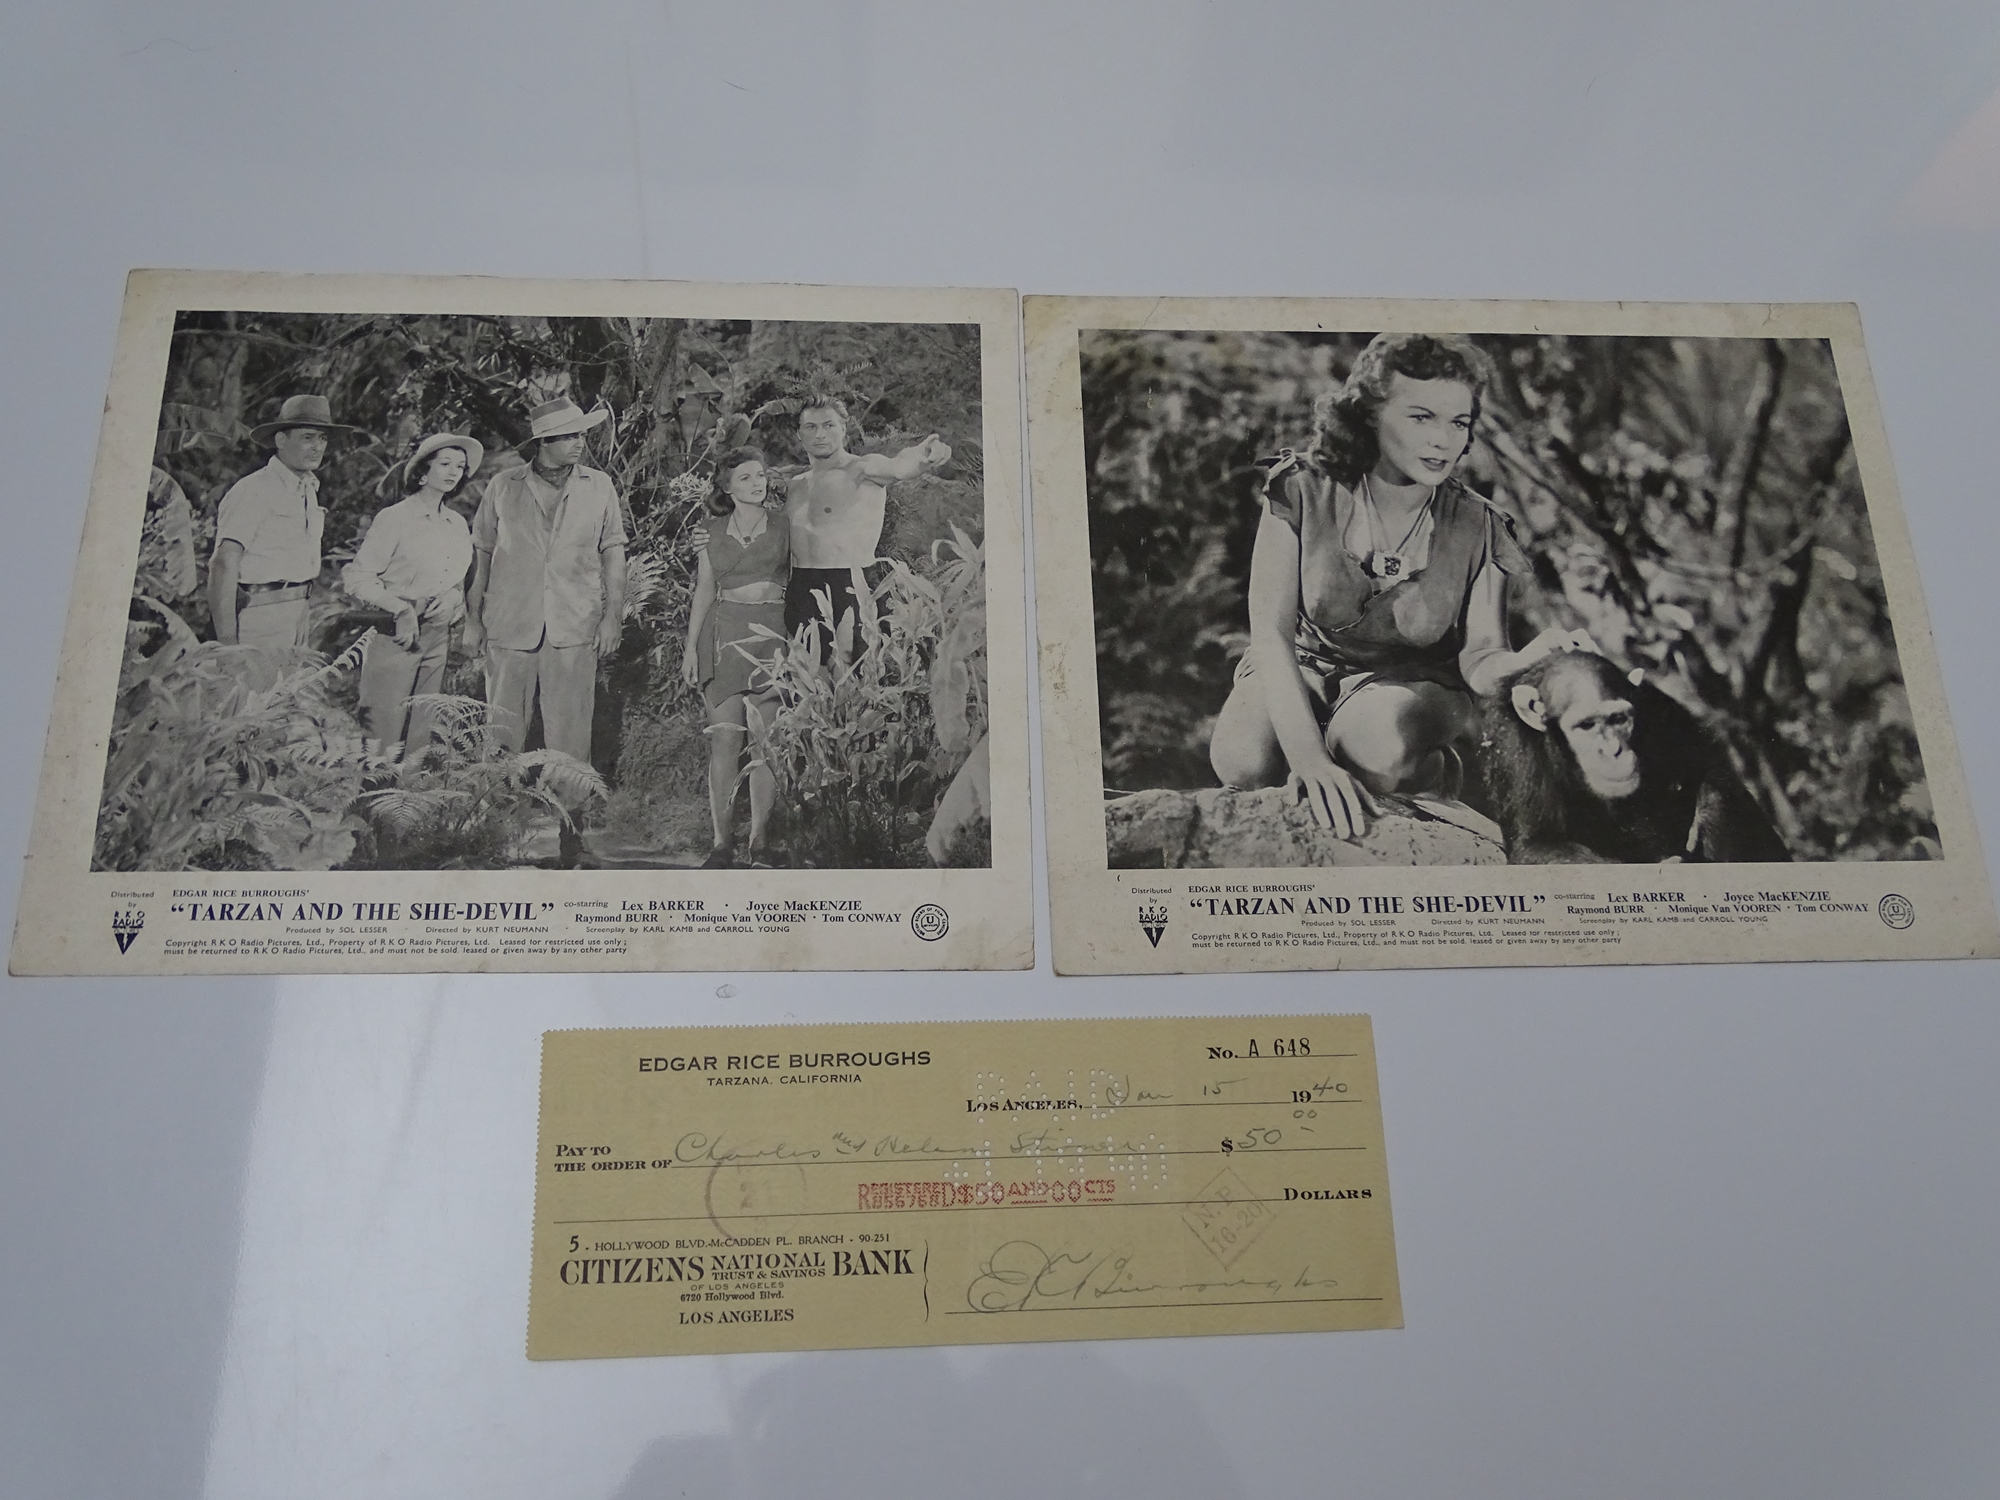 AUTOGRAPHS: EDGAR RICE BURROUGHS - Signed cheque - also endorsed to rear - together with two black /